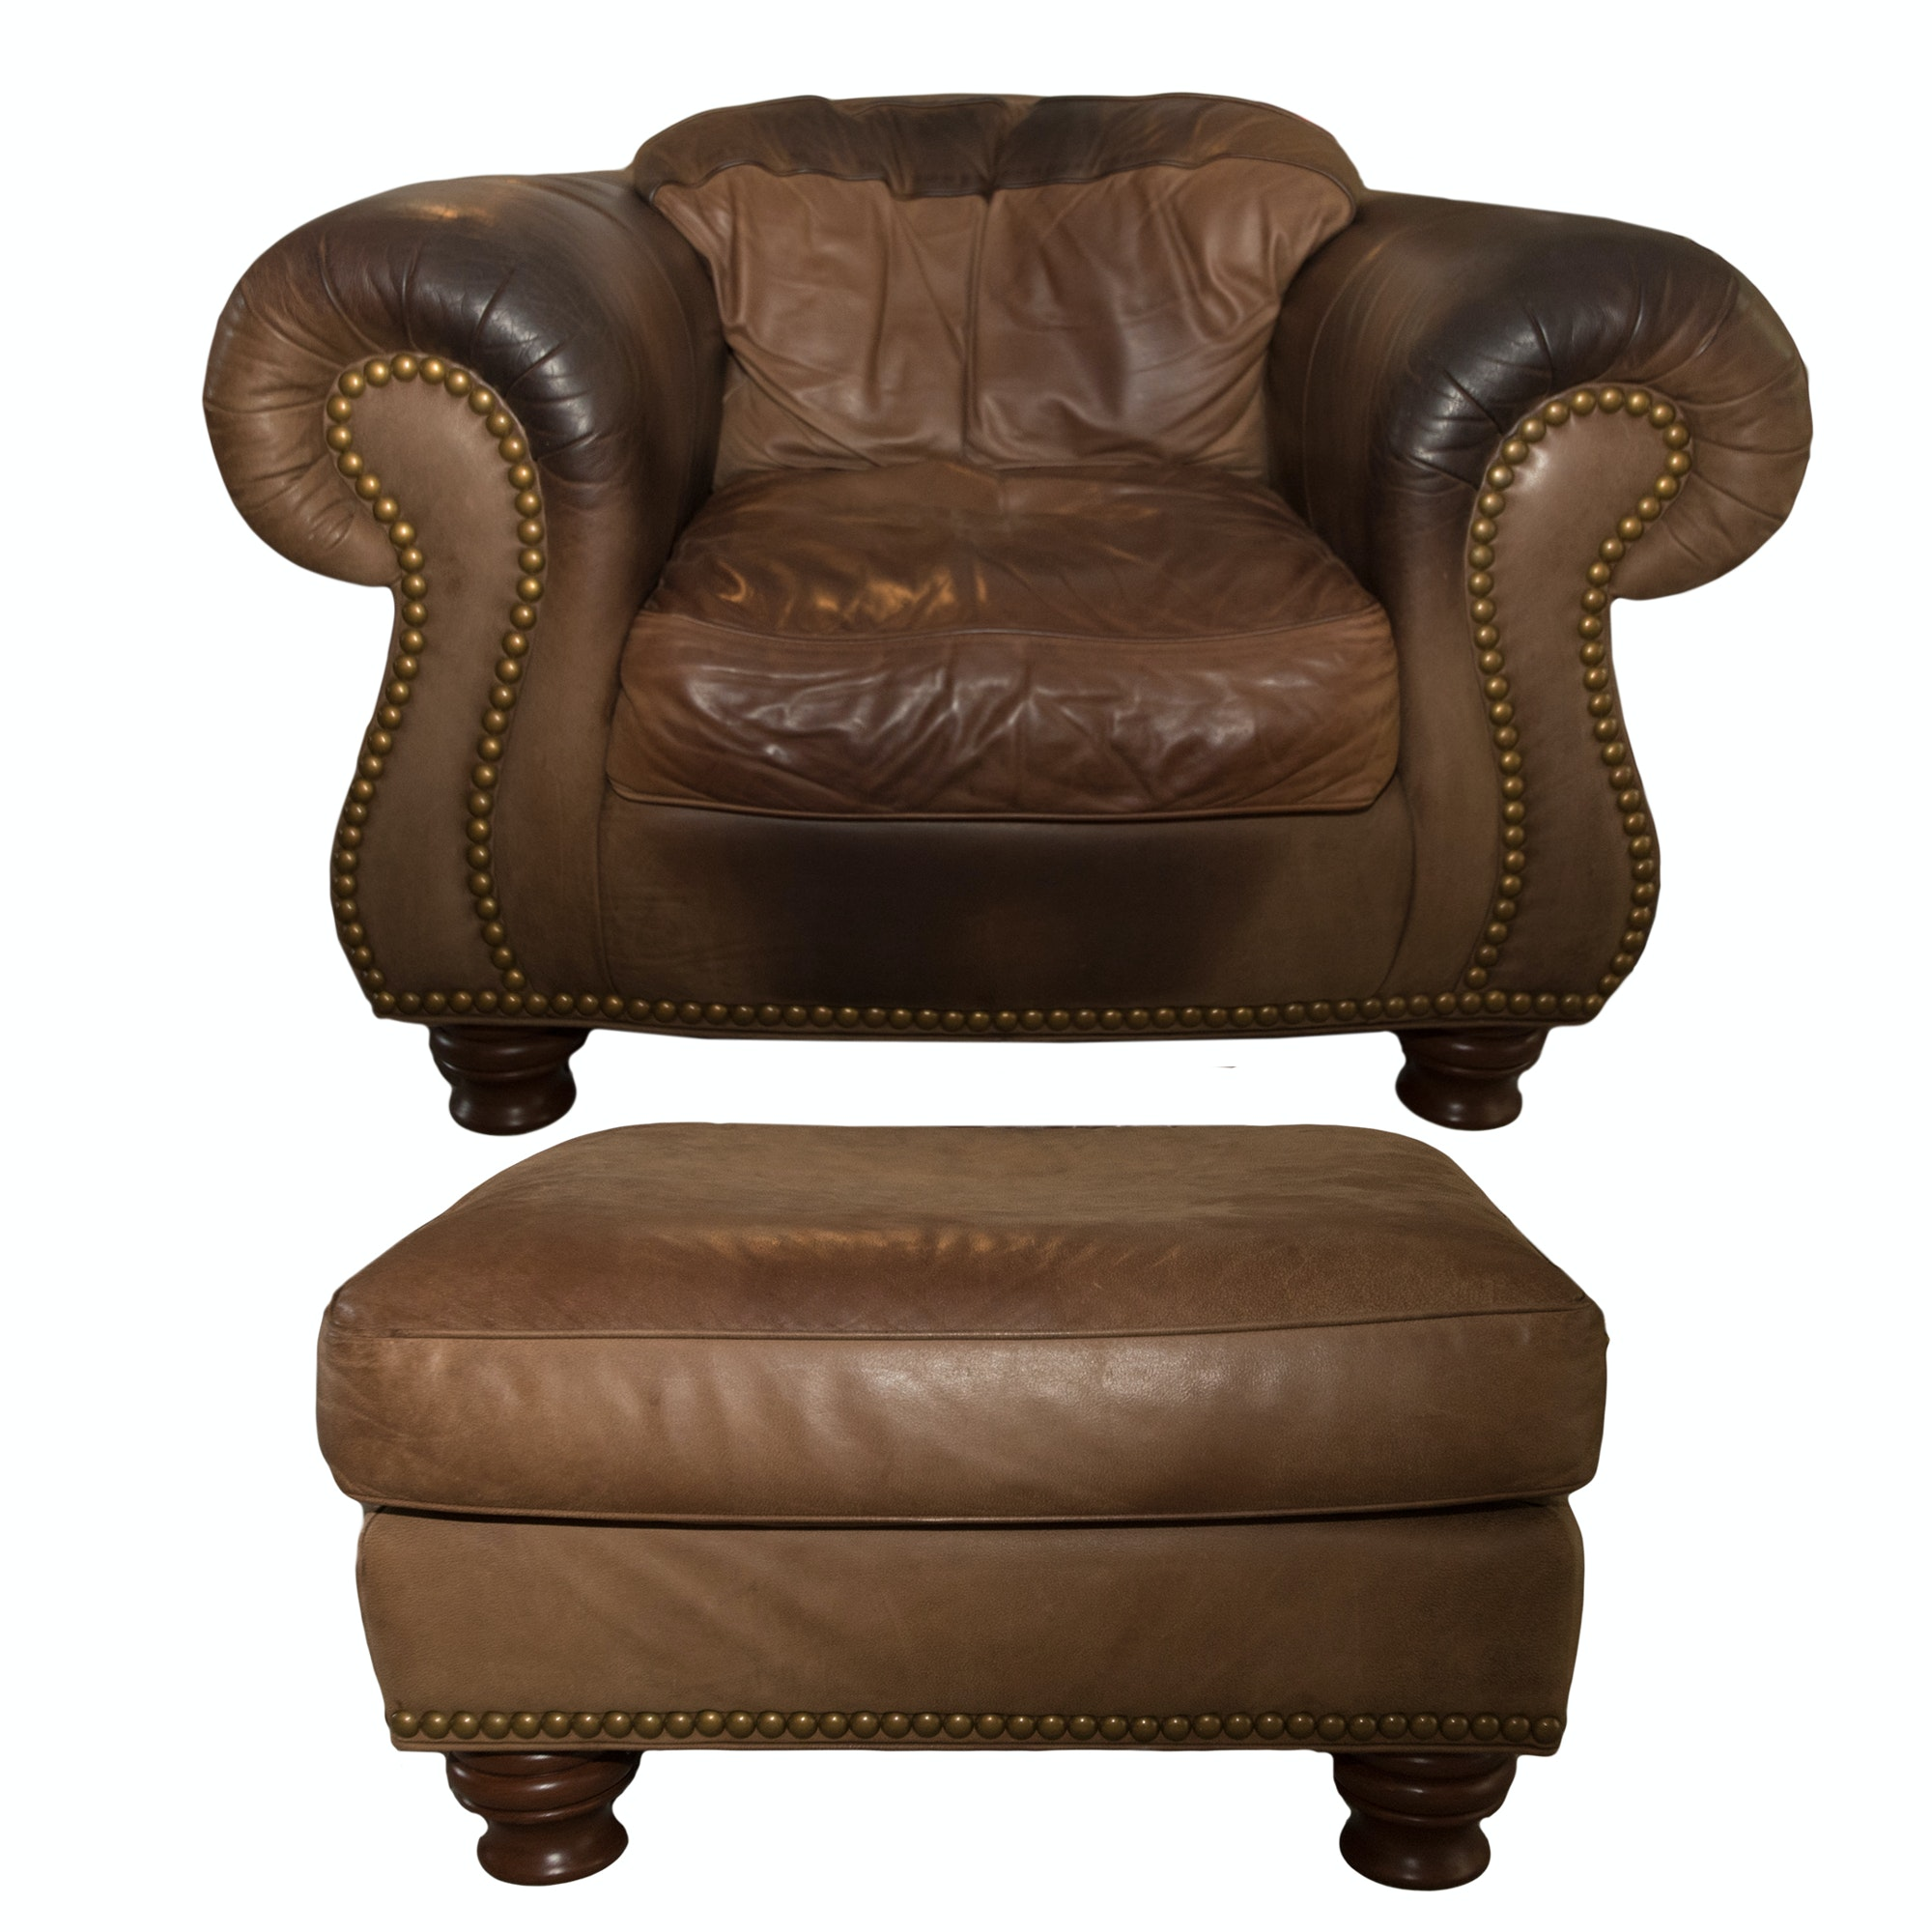 "Drexel-Heritage ""Kashmir"" Leather Armchair and Ottoman"